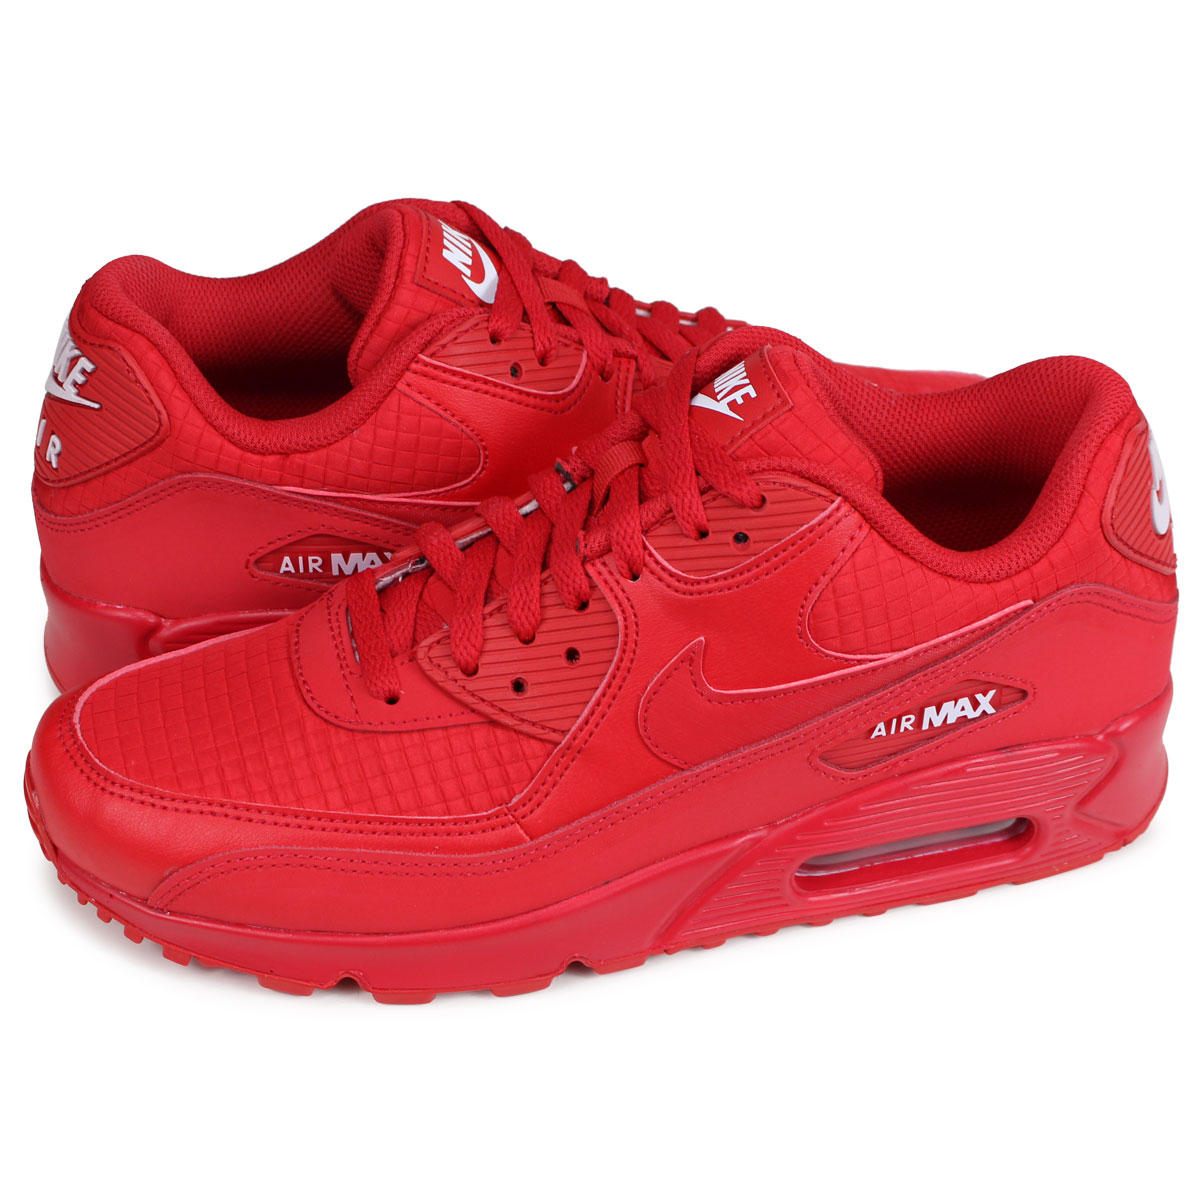 ea69ab3c291f Nike NIKE Air Max 90 essential sneakers men gap Dis AIR MAX 90 ESSENTIAL  red AJ1285-602  5 15 reentry load   195